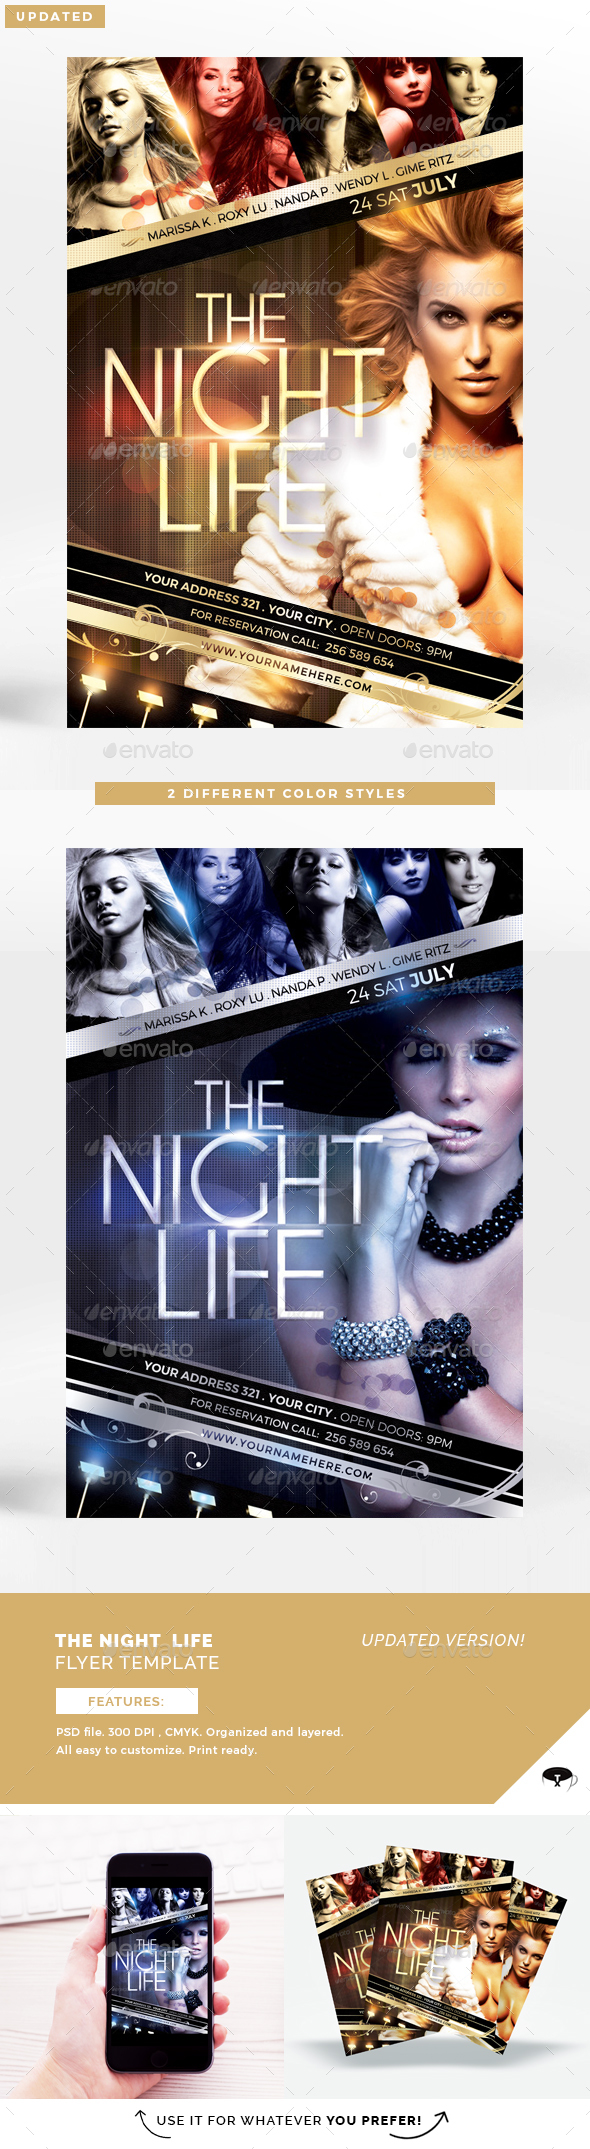 The Night Life Flyer Template - Flyers Print Templates